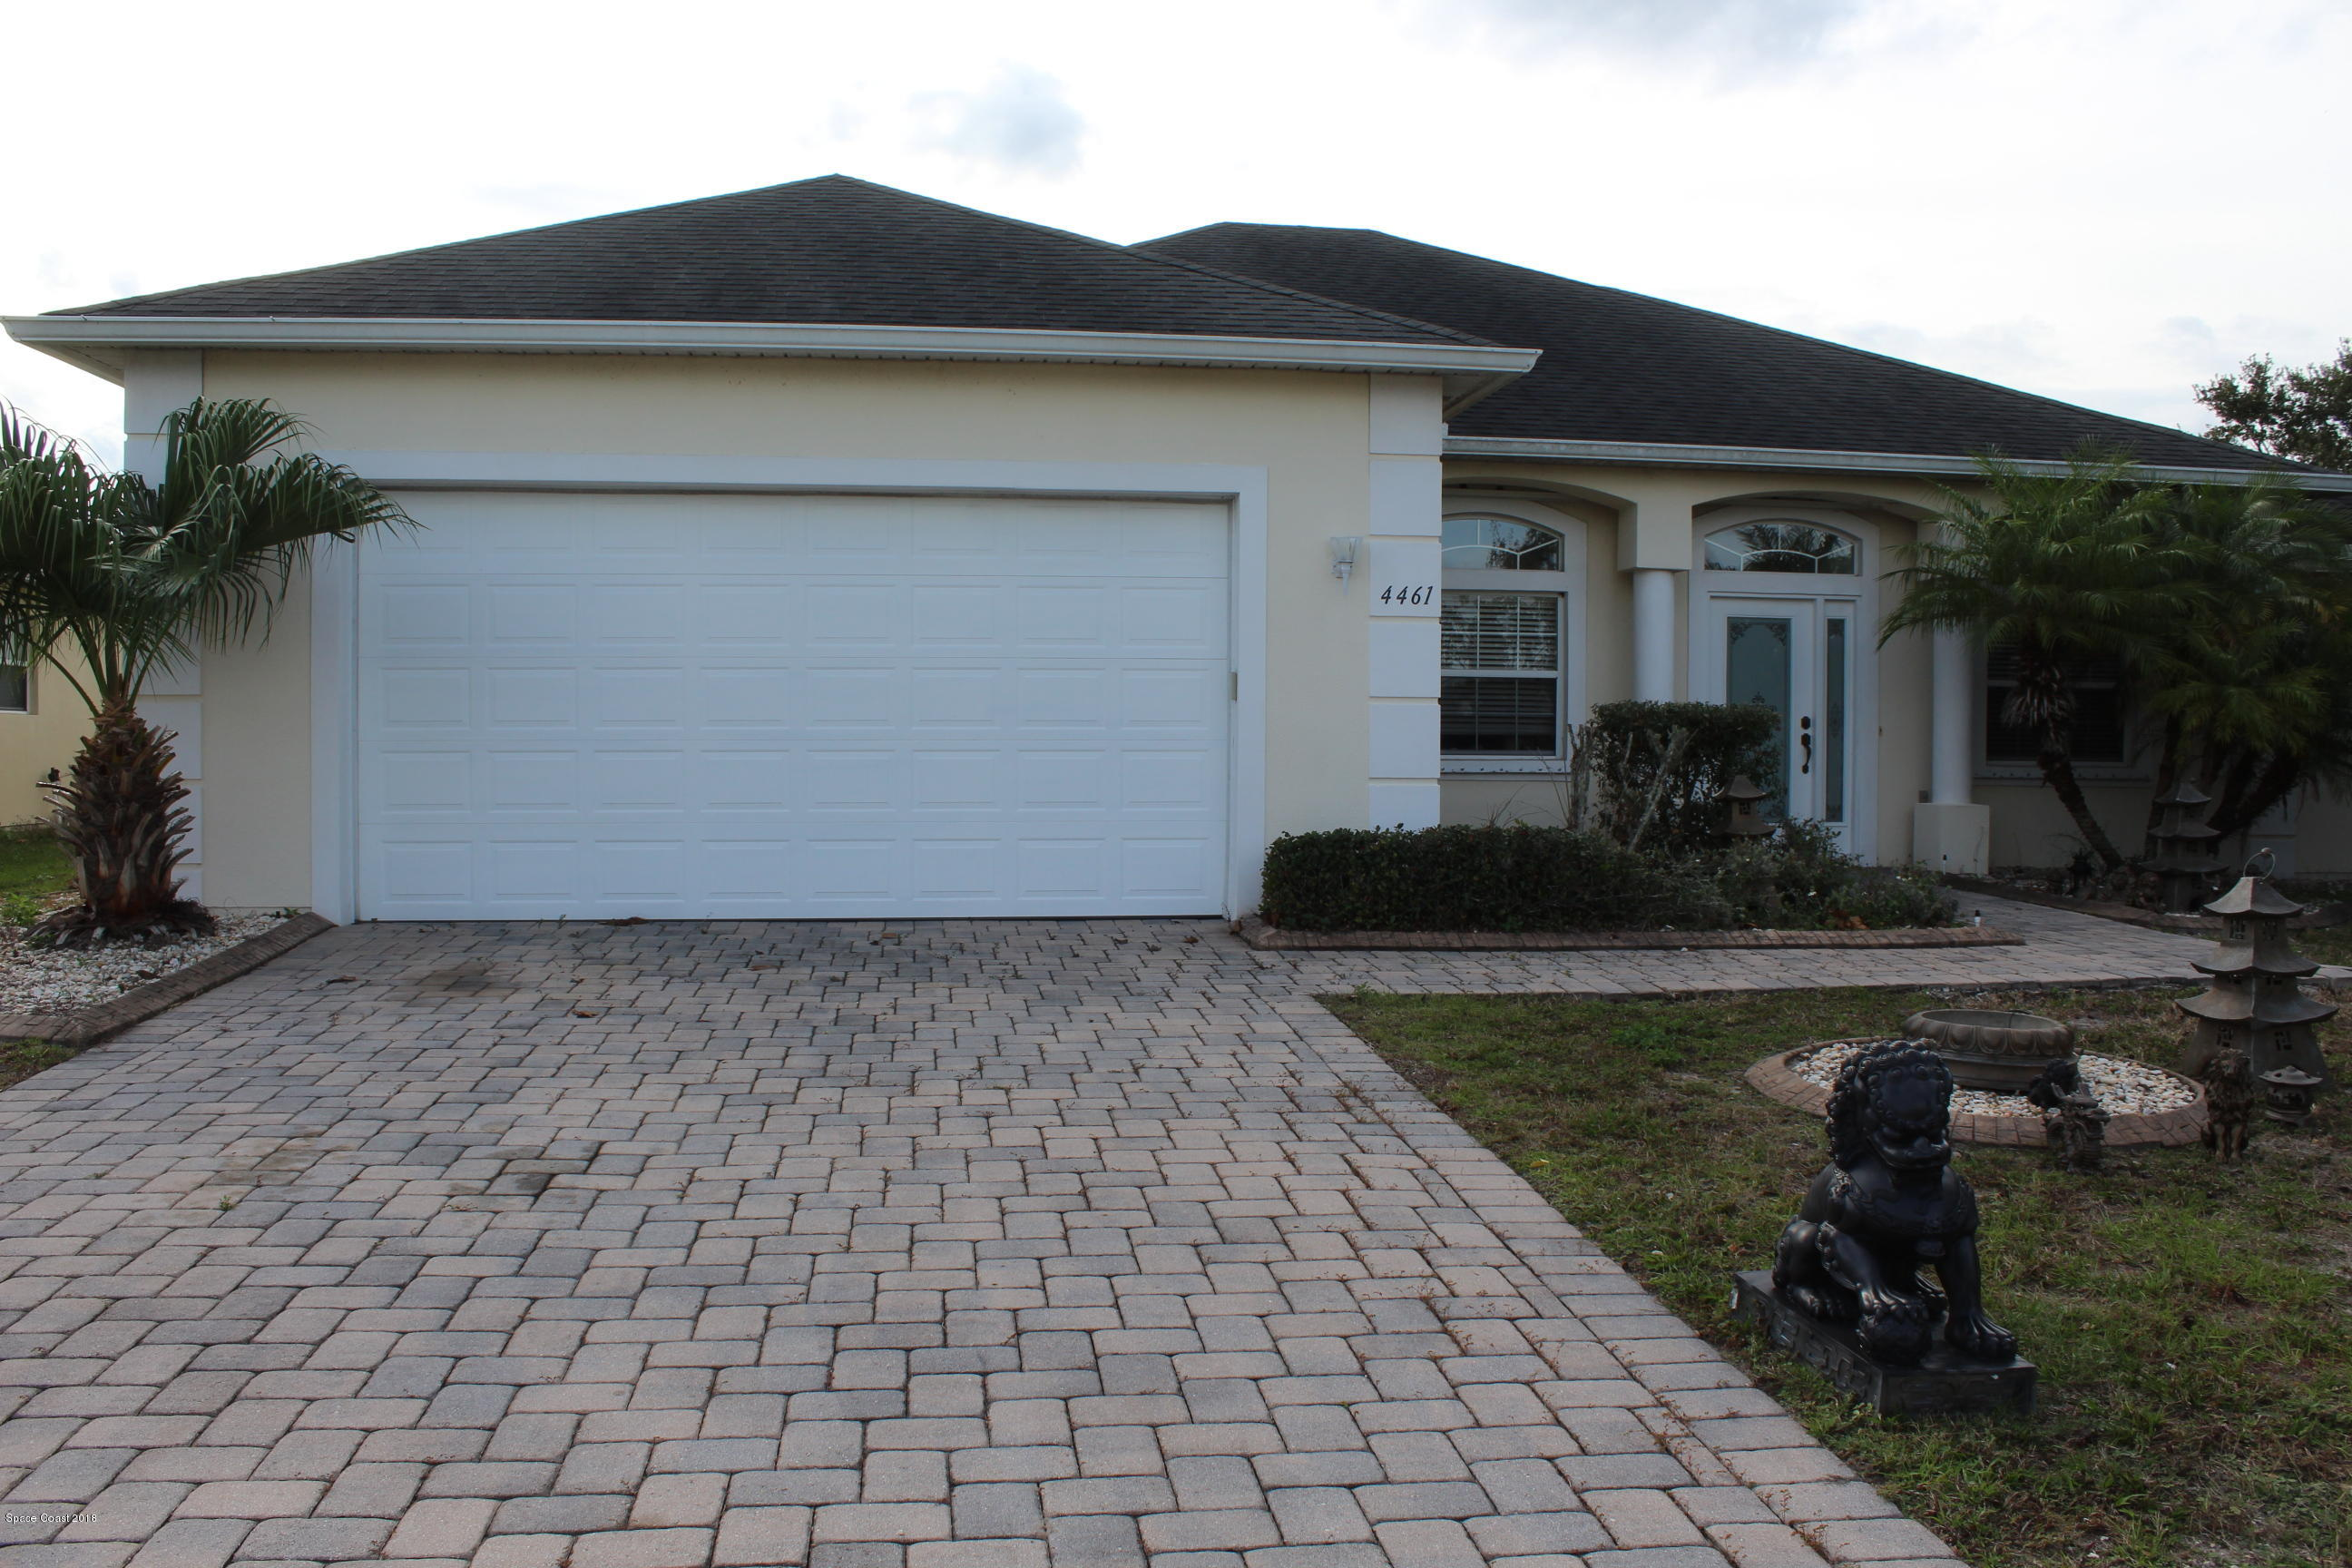 Single Family Home for Sale at 4461 Sugarberry 4461 Sugarberry Titusville, Florida 32796 United States